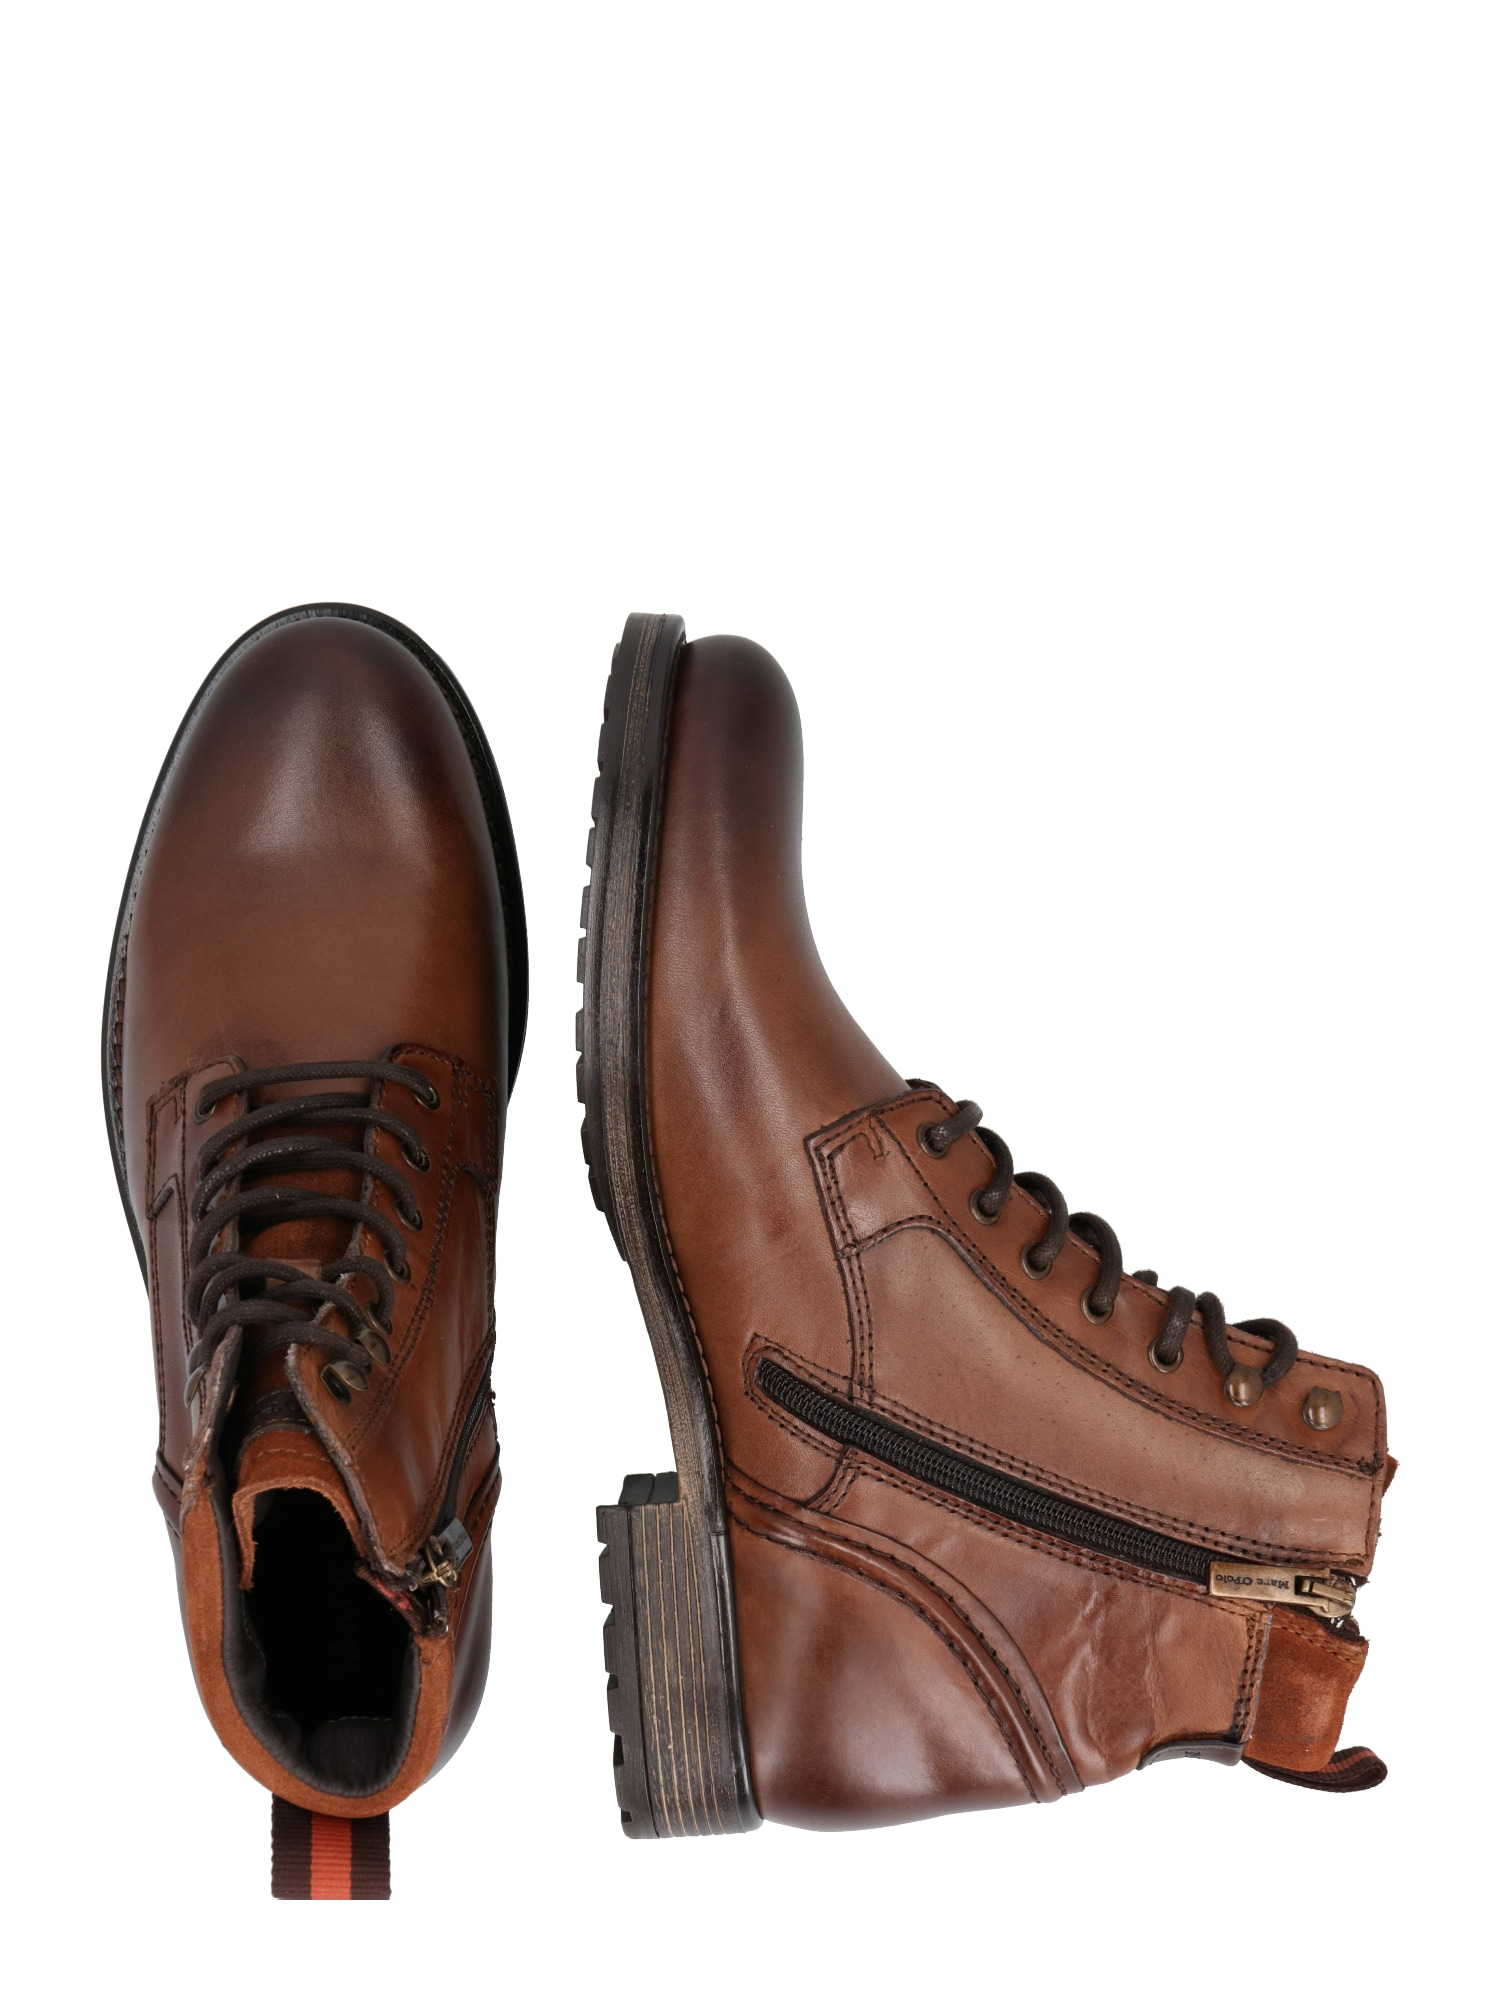 marc o'polo - Stiefel 'Lace Up'